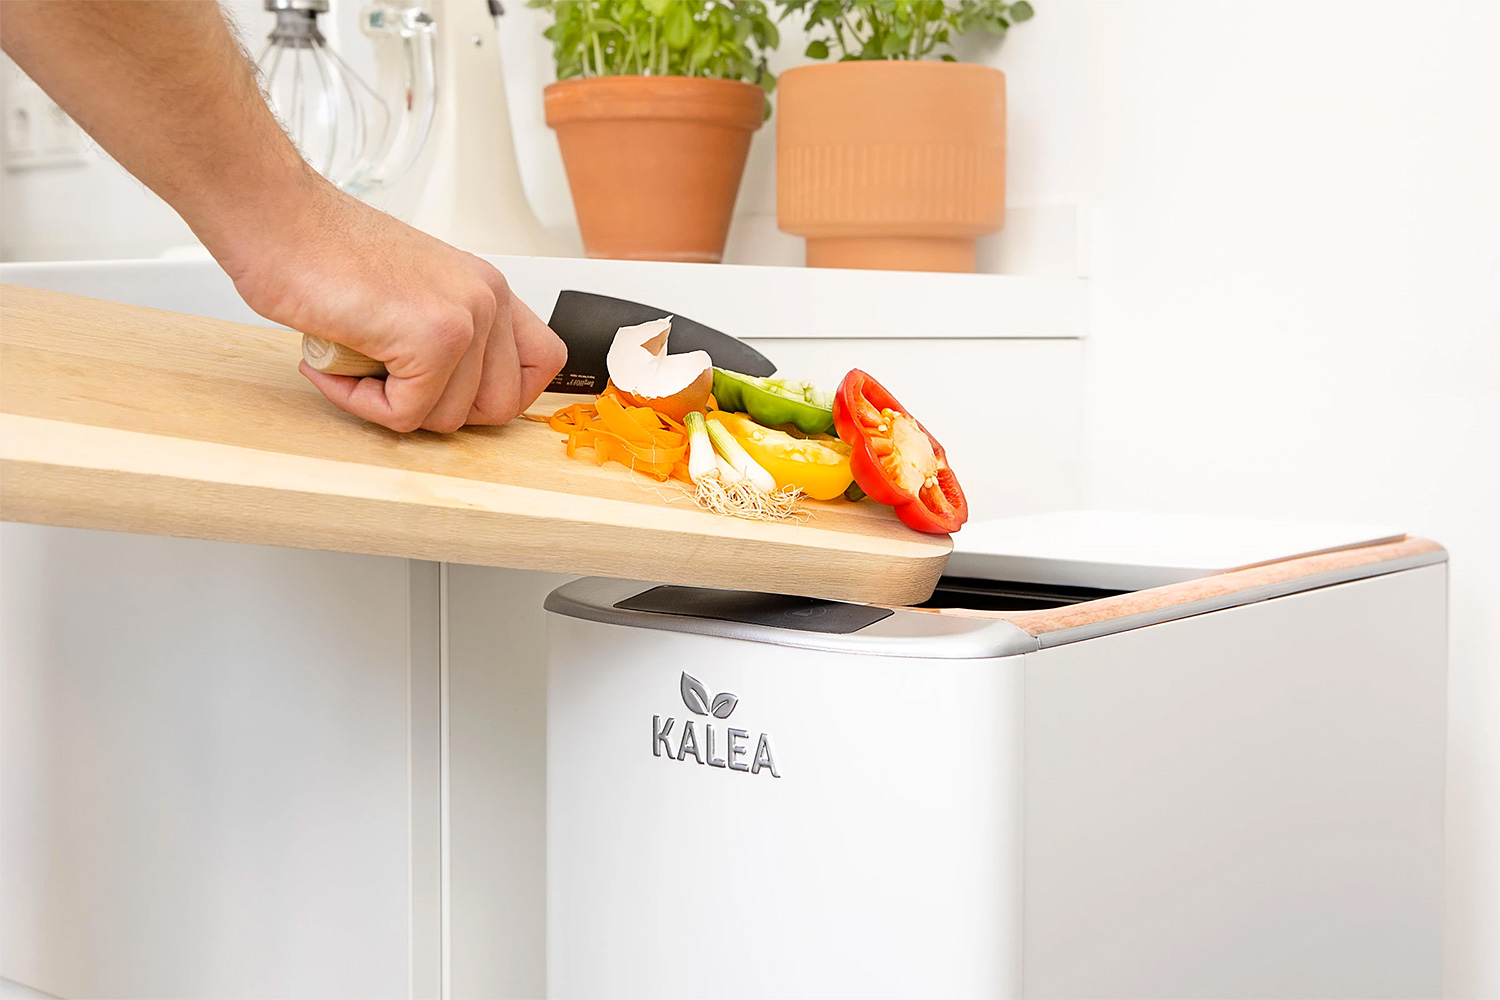 Convert Kitchen Waste Into Compost in Just 48 Hours at werd.com